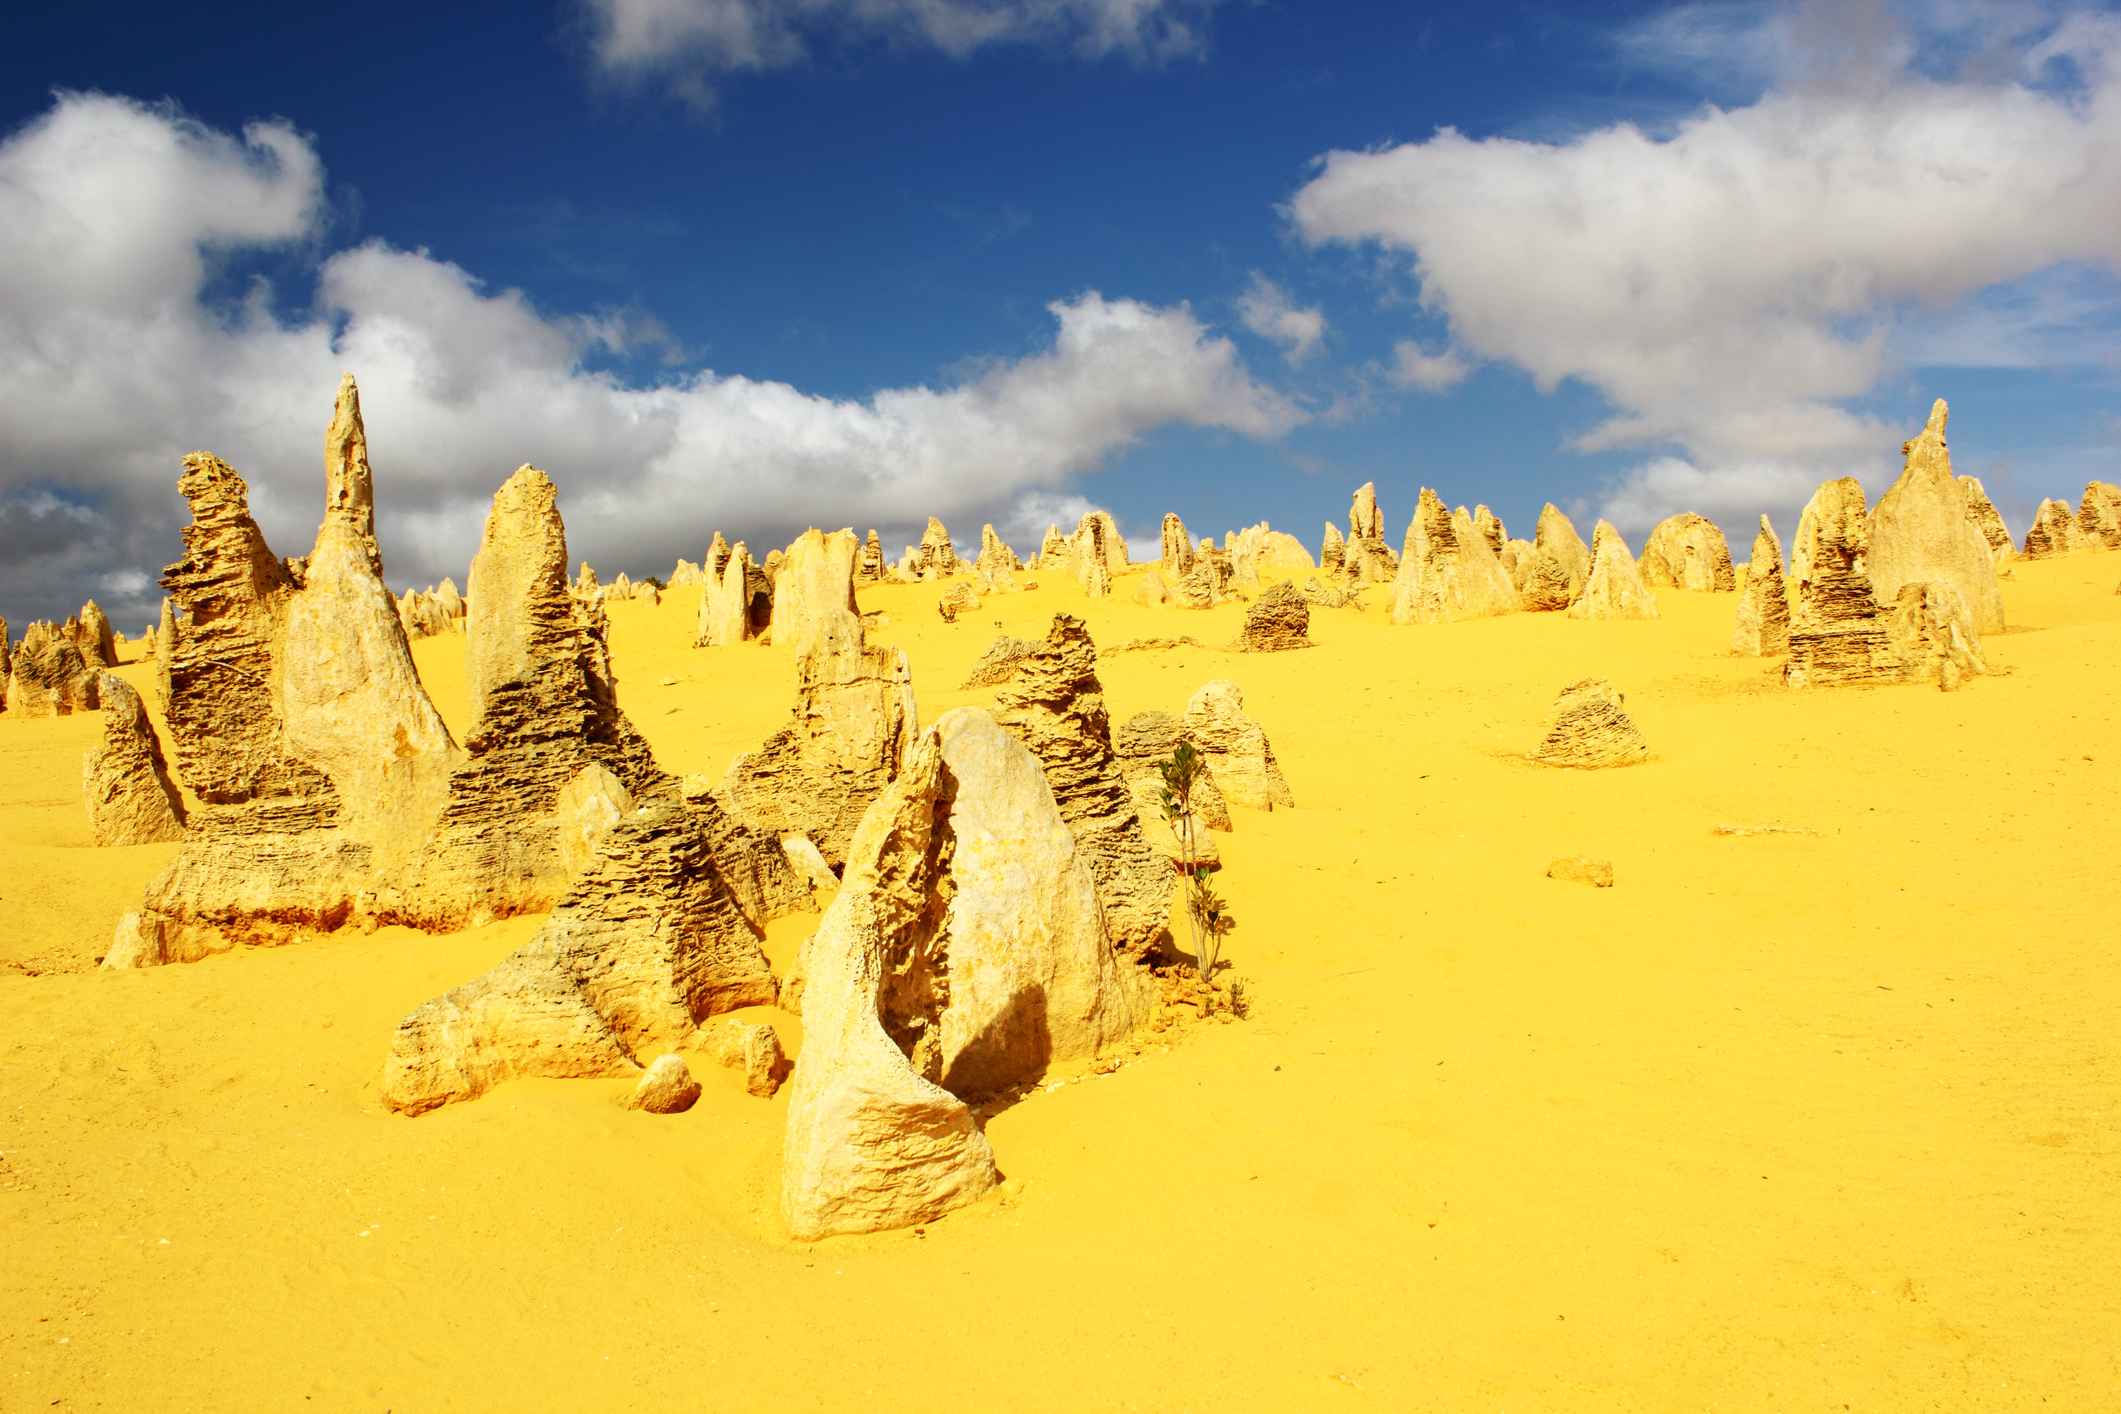 Perth day trips: nine reasons why The Pinnacles have to be